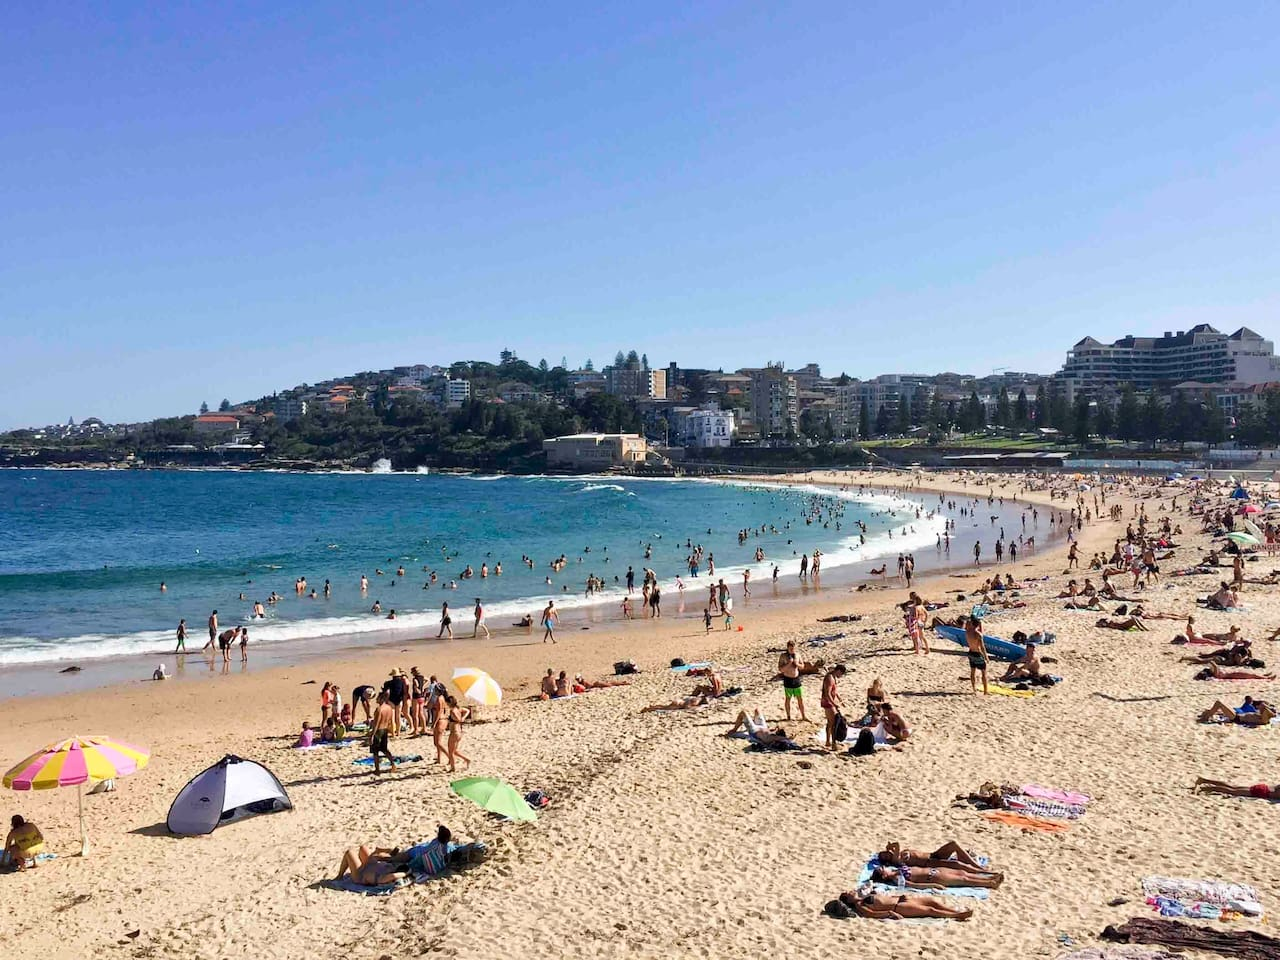 Coogee Beach - 5 minute walk from house